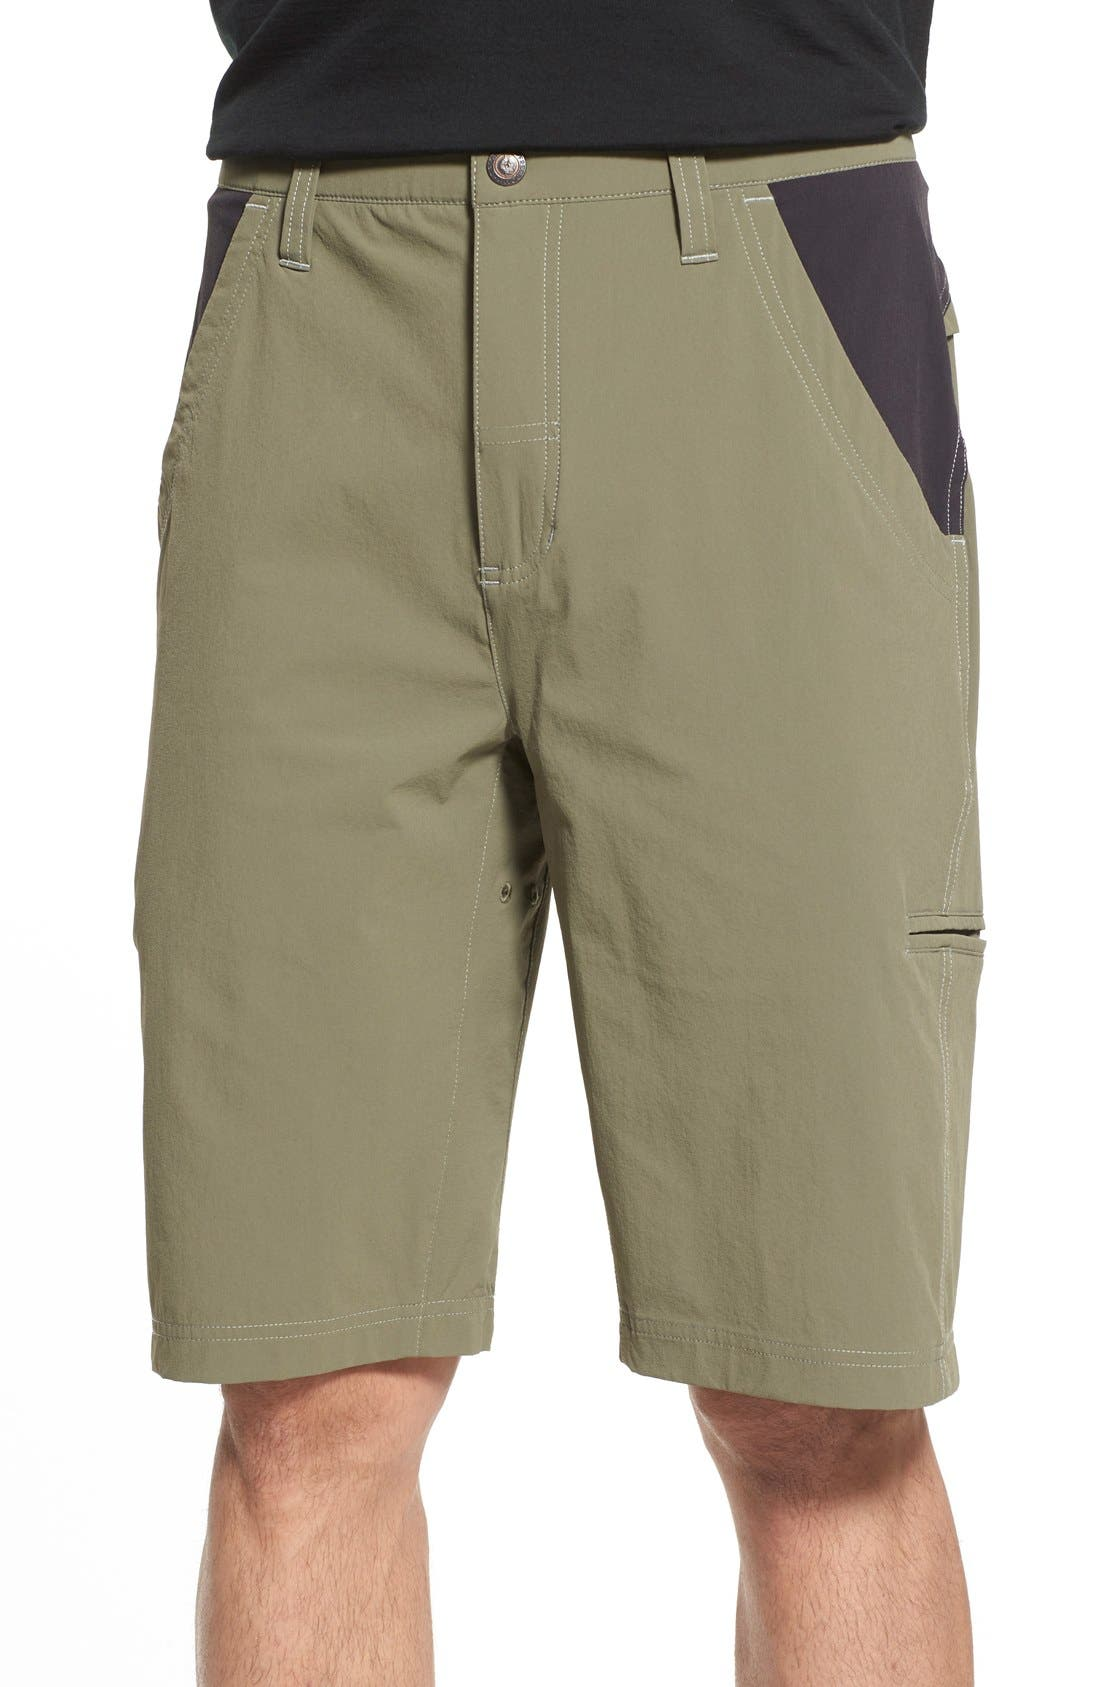 'Grayson' Shorts,                         Main,                         color, Bungee Cord